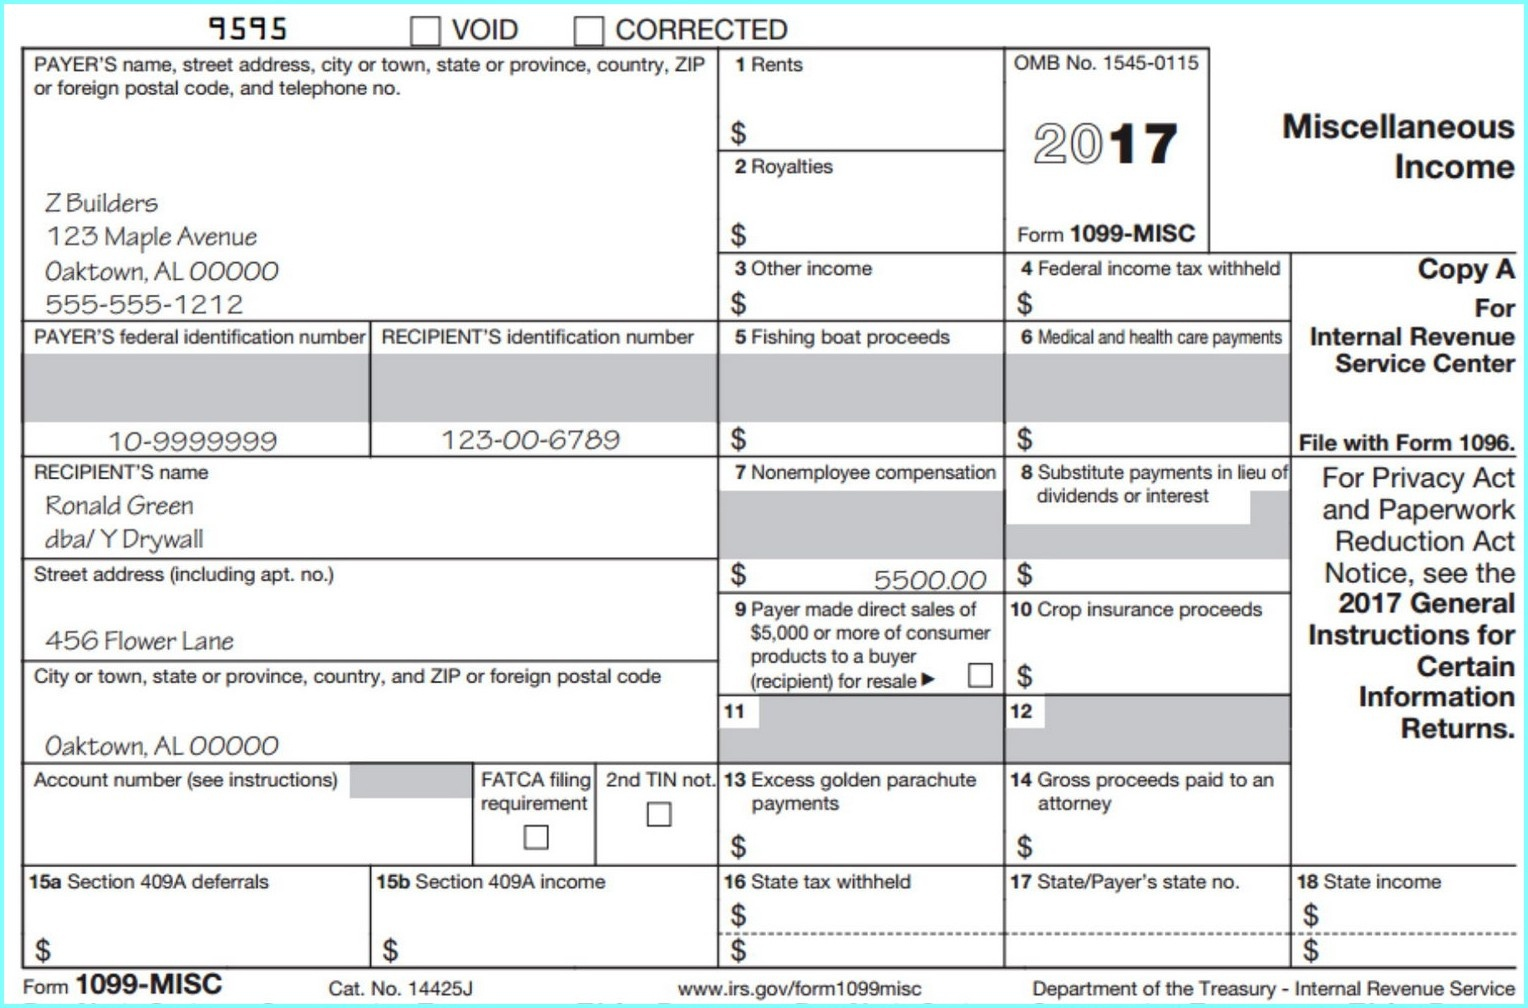 Printable 1099 Form 2017 Misc - Form : Resume Examples #djqlelg4Kw - Free Printable 1099 Form 2017